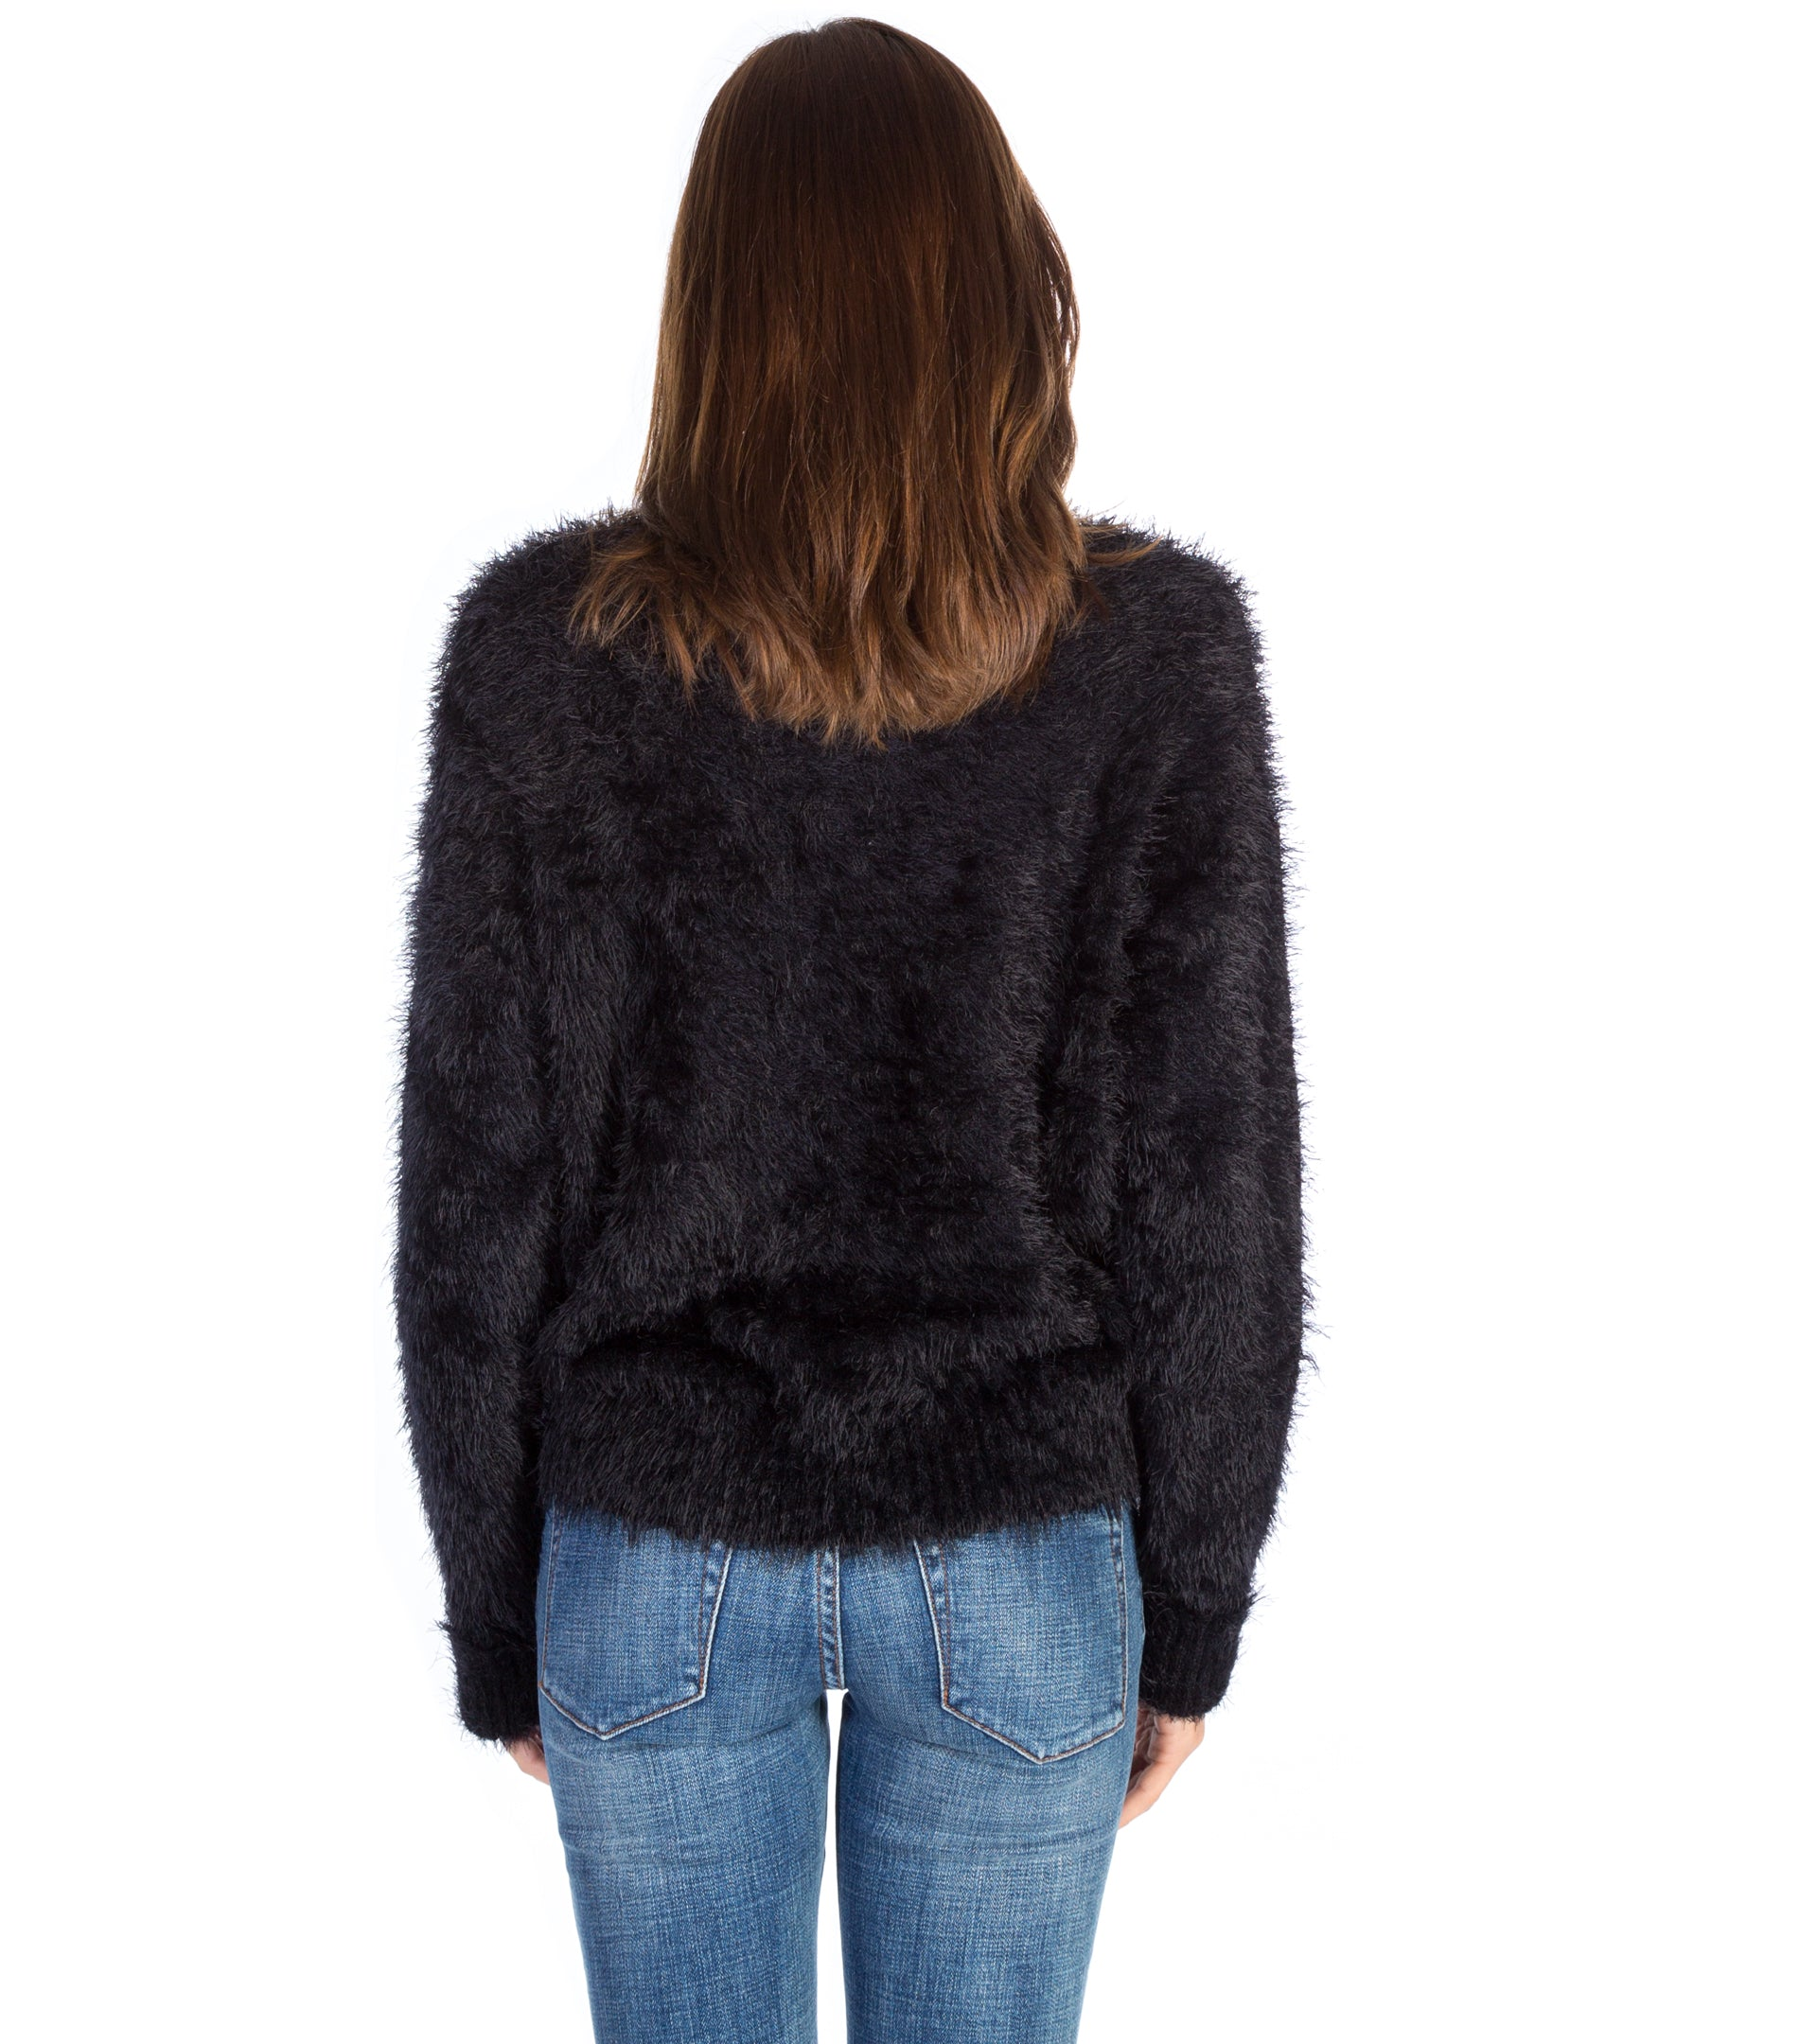 SUGARLOAF CROP KNIT SWEATER